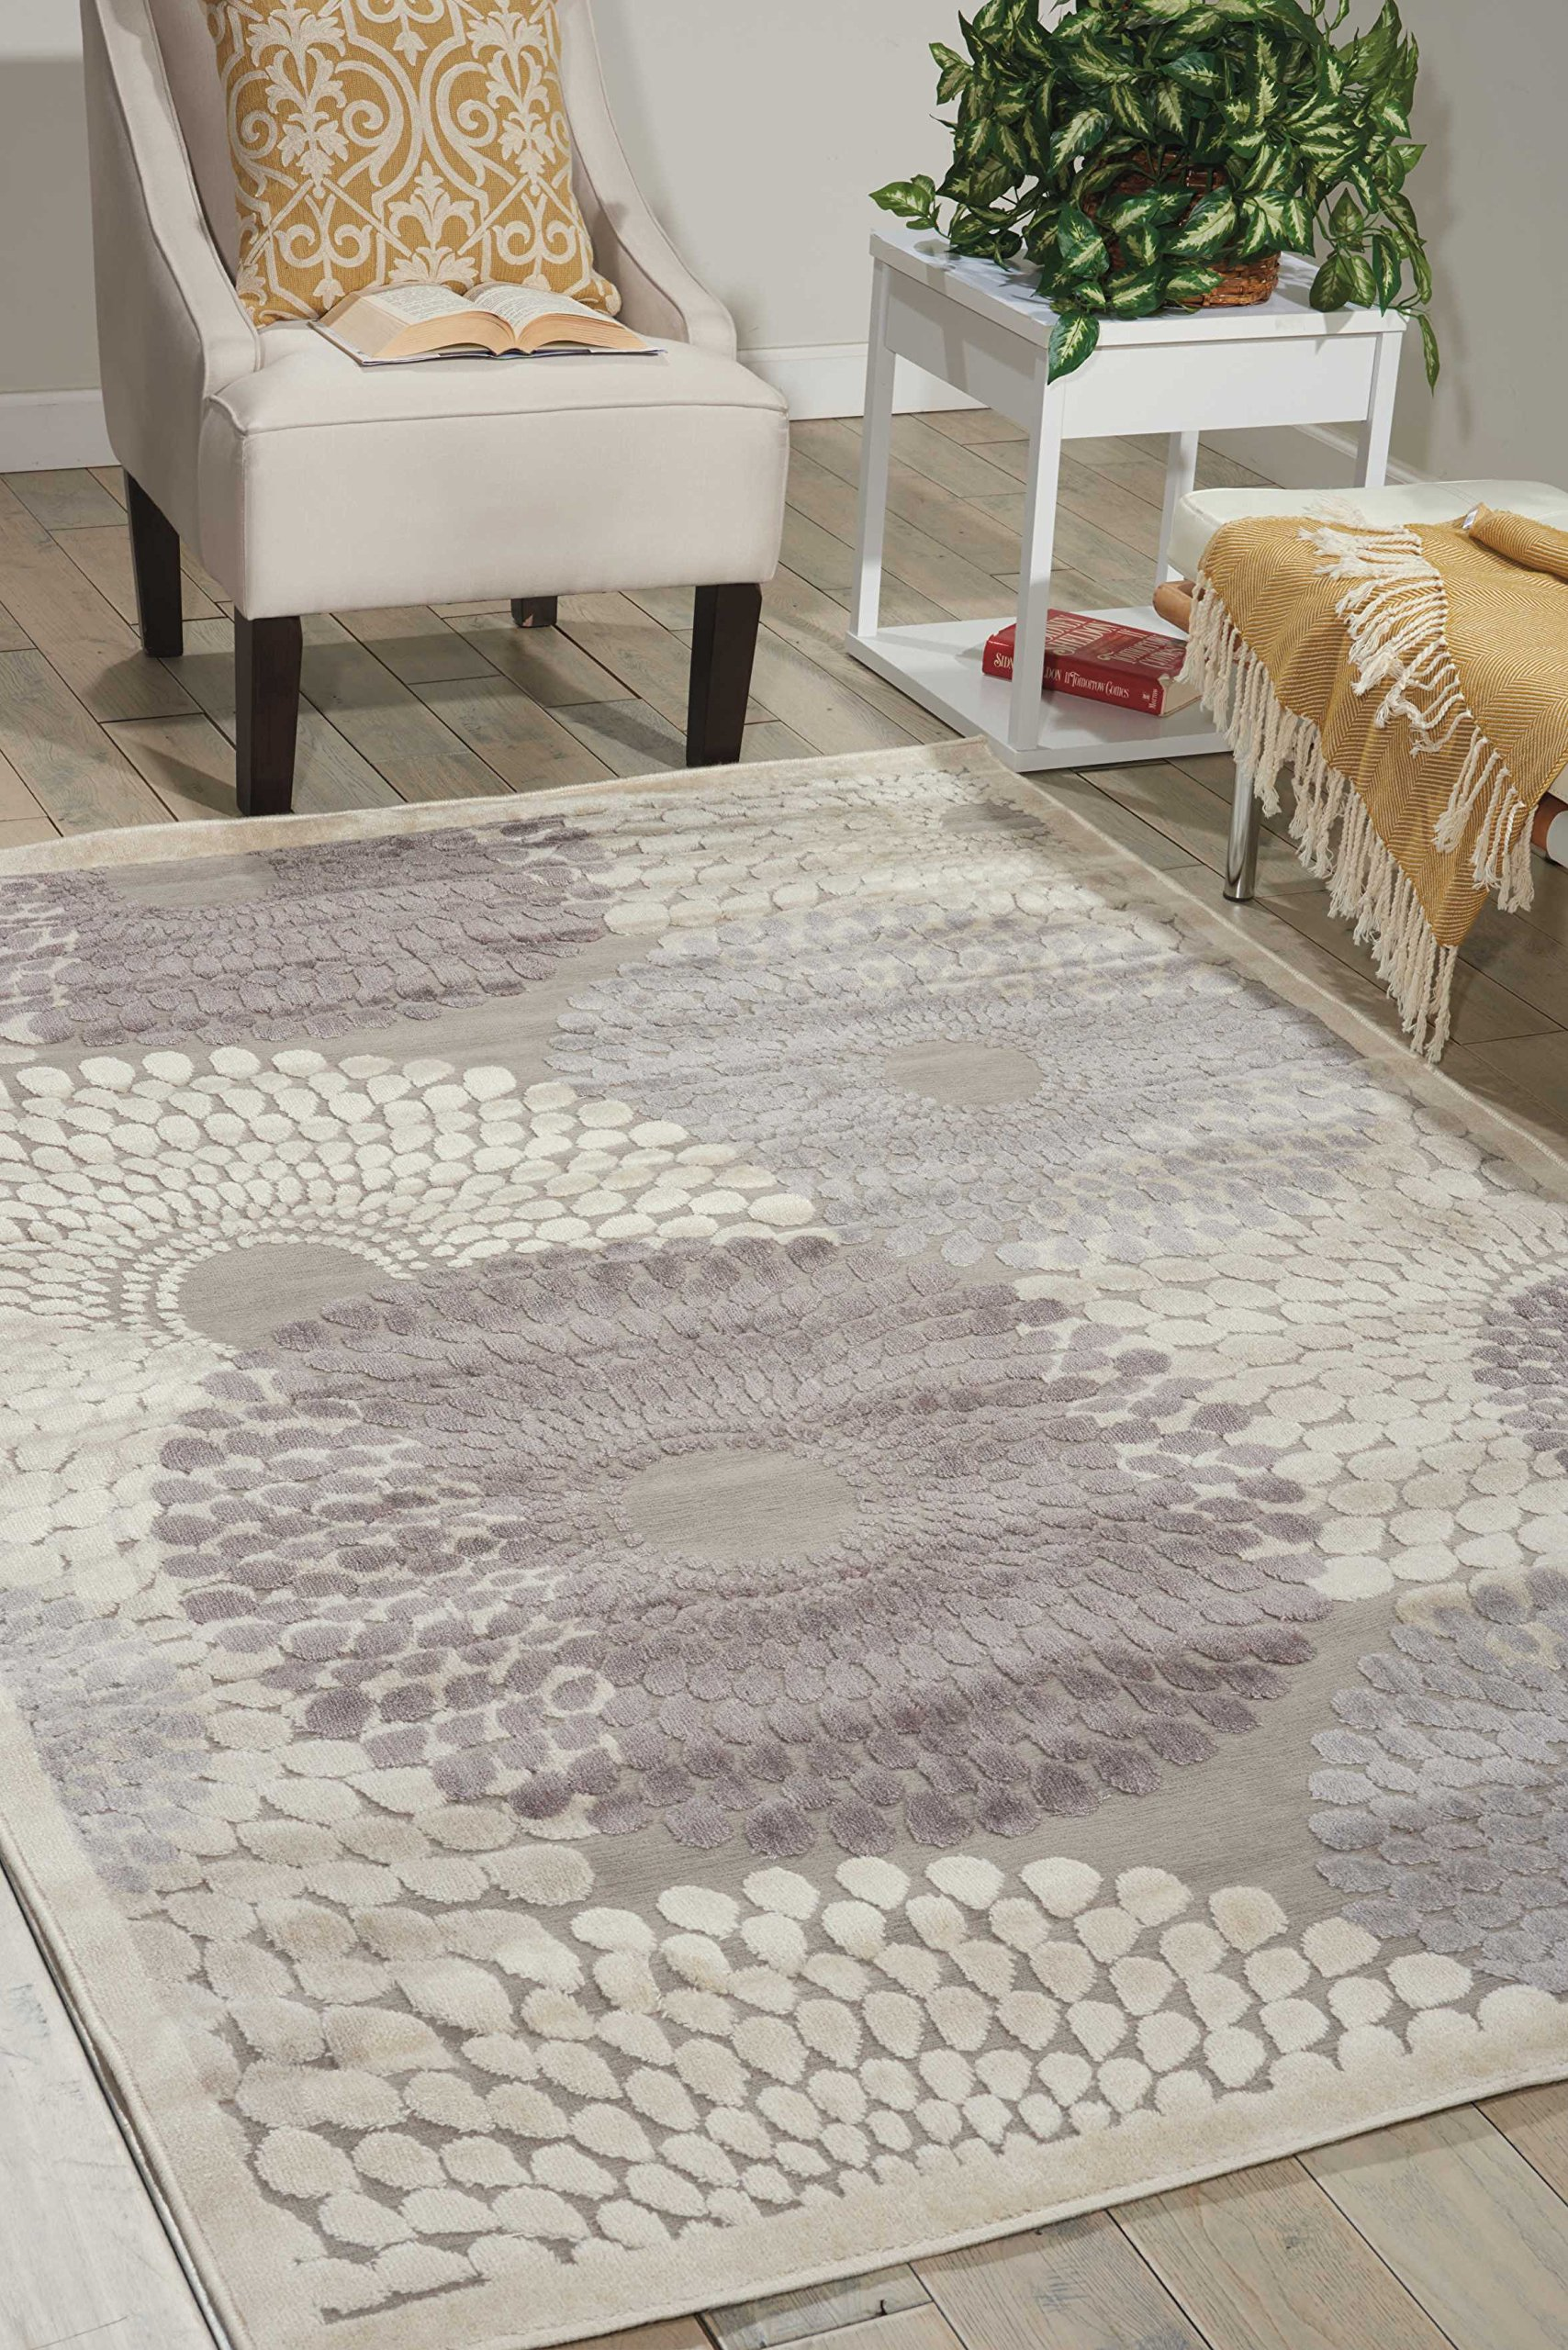 """Nourison Graphic Illusions (GIL04) Grey Rectangle Area Rug, 5-Feet 3-Inches by 7-Feet 5-Inches (5'3"""" x 7'5"""") - Graphic Illusions Grey 5'3"""" x 7'5"""" area rug by Nourison, part of the Graphic Illusion Collection, is another quality home décor essential for your high-traffic living spaces. Nobody does floor coverings like Nourison and the Graphic Illusions Grey 5'3"""" x 7'5"""" area rug is part of a best-seller collection from this world-renowned rug powerhouse. Nourison is the leader in elegant floor covering construction with a wide selection of rugs and world-class product quality. This commitment to maintaining an outstanding reputation is a special point of pride throughout the company. In this best-seller collection, Nourison's proprietary high-low pile construction gives this Grey 5'3"""" x 7'5"""" indoor rug an elegant look and feel that is unparalleled in the rug industry. Hand-woven with 30% polypropylene and 70% acrylic, this unique blend ensures a soft touch and easy maintenance; it is naturally water-, stain- and soil-resistant with no topical treatments applied. Just vacuum and spot clean for great results. Use this rug for your bedroom or living room. - living-room-soft-furnishings, living-room, area-rugs - 910eNQ6%2B4CL -"""